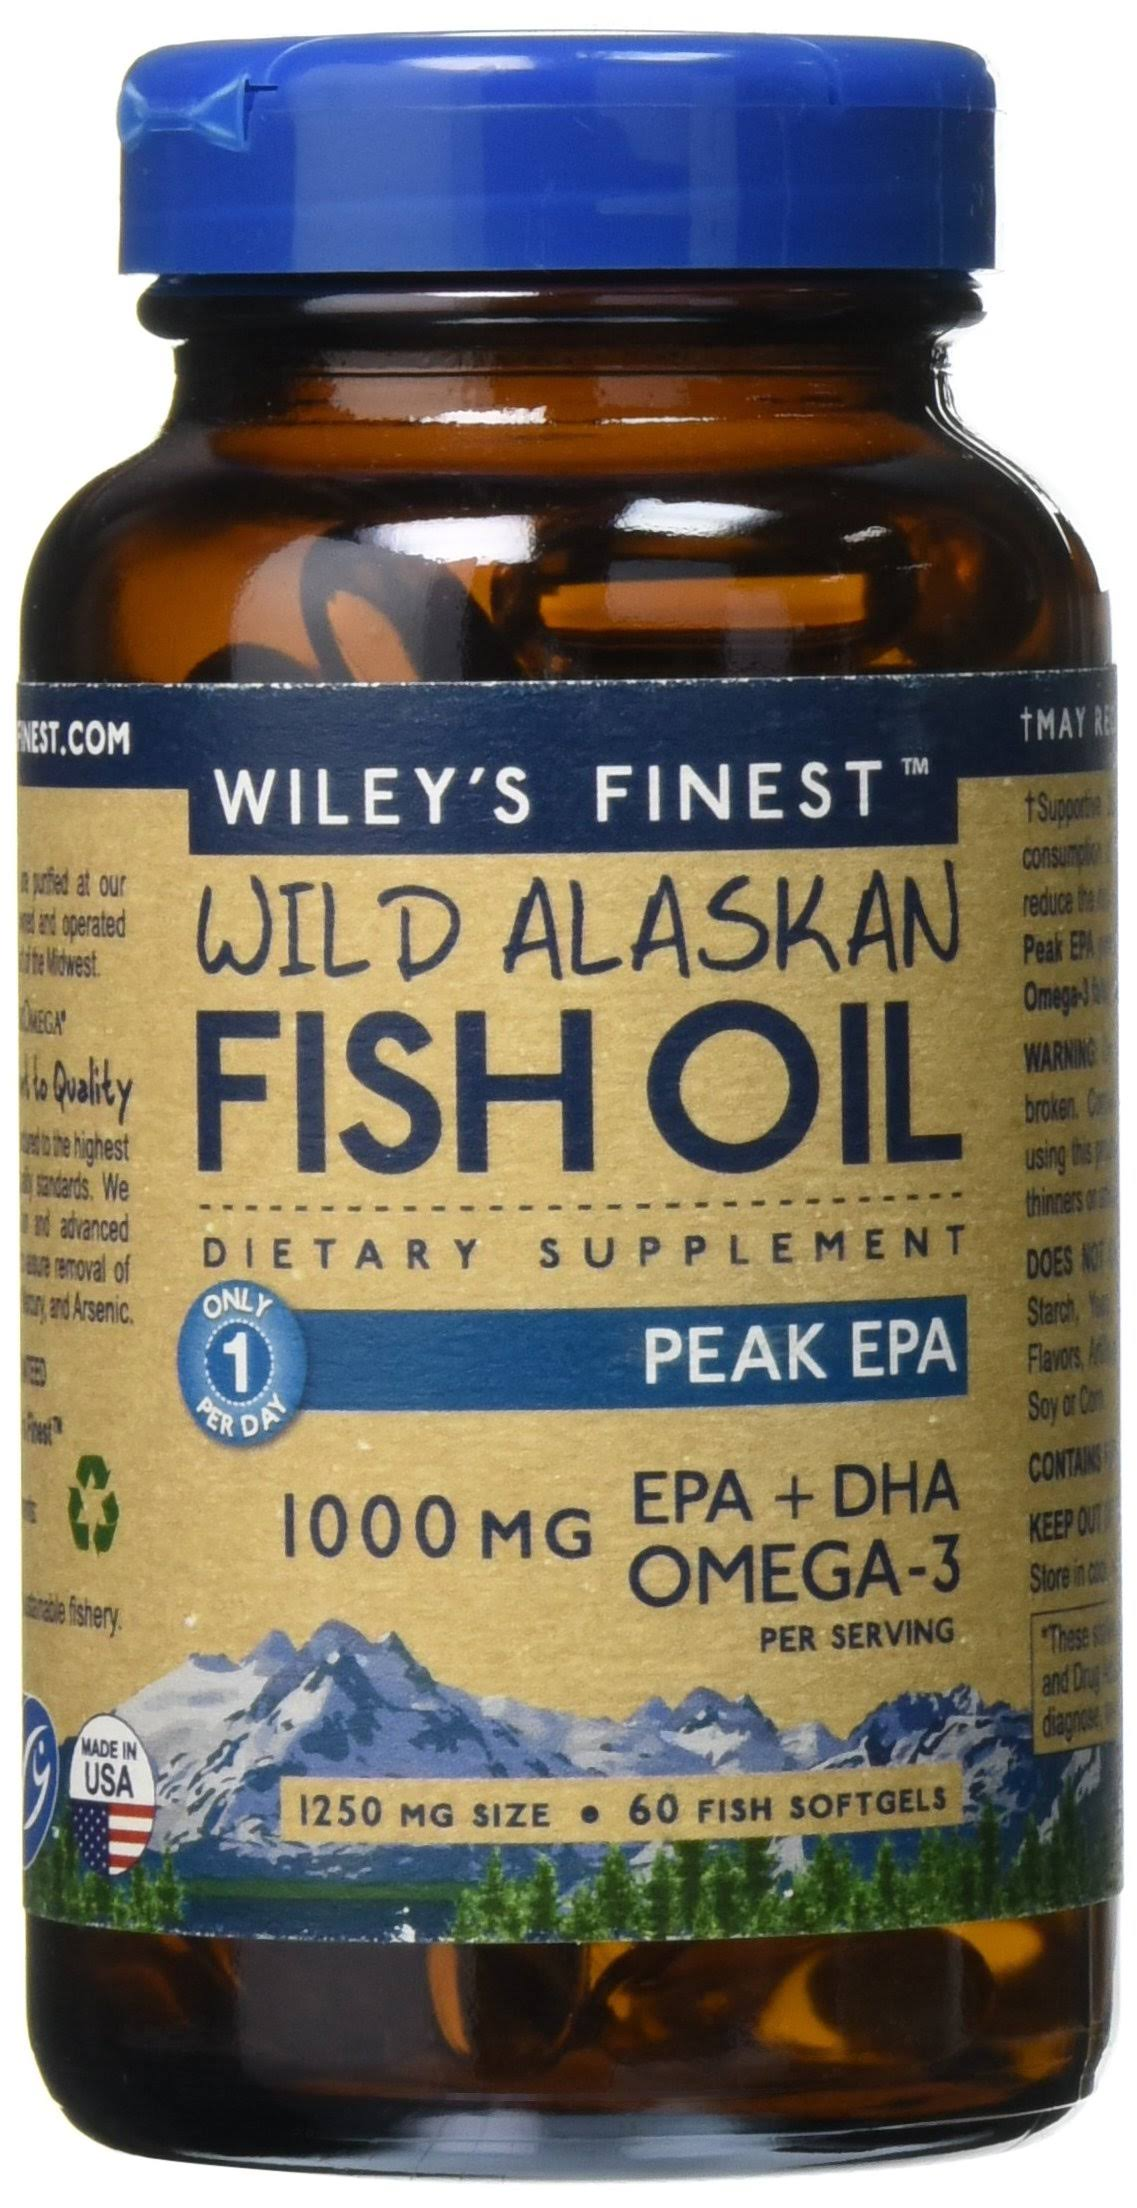 Wiley's Finest Wild Alaskan Fish Oil EPA + DHA Omega 3 Supplements - 60ct